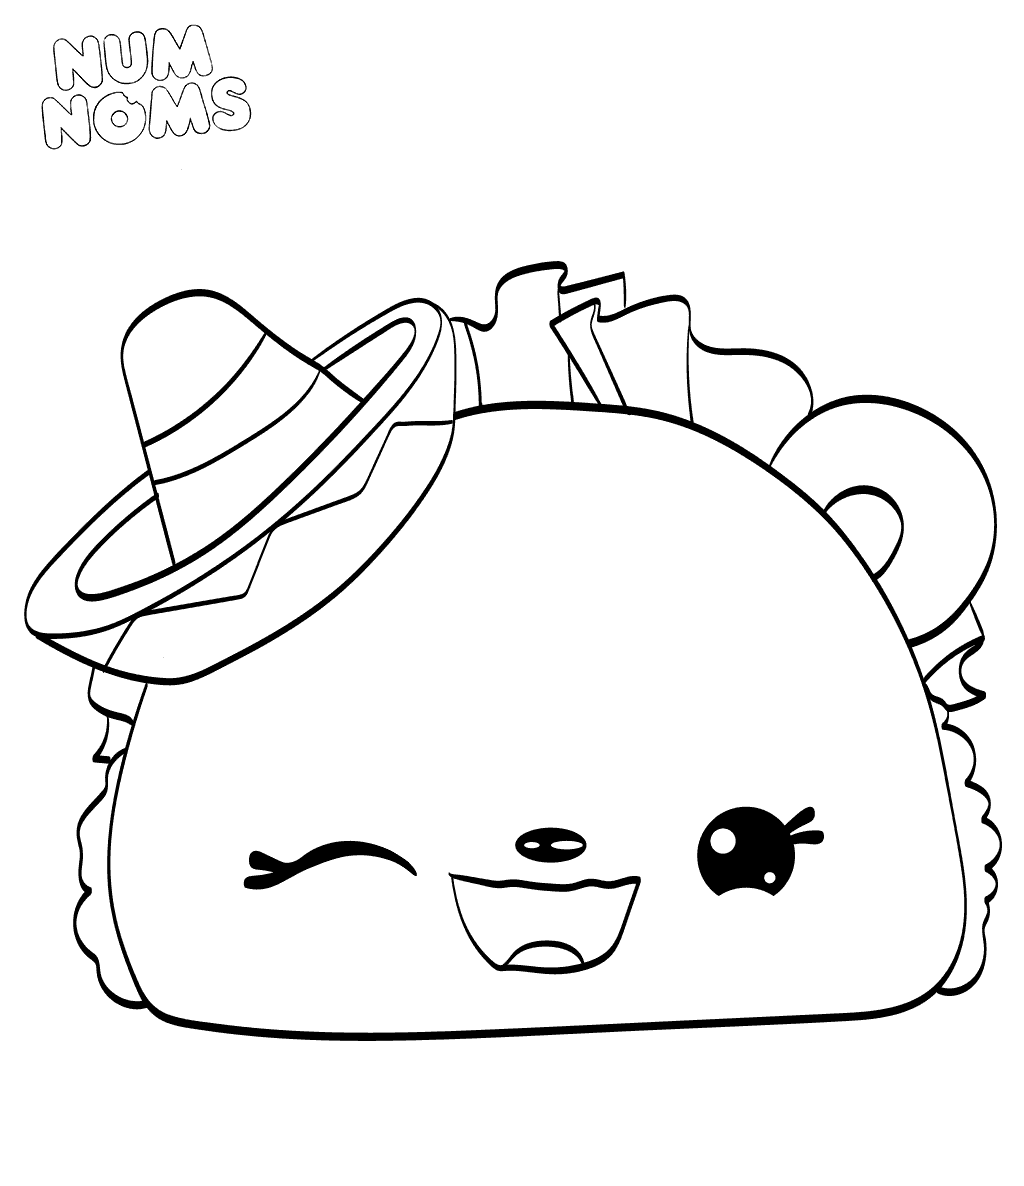 Coloring Pages Num Noms Tasty Taco Cartoon Coloring Pages Coloring Pages Inspirational Cute Coloring Pages